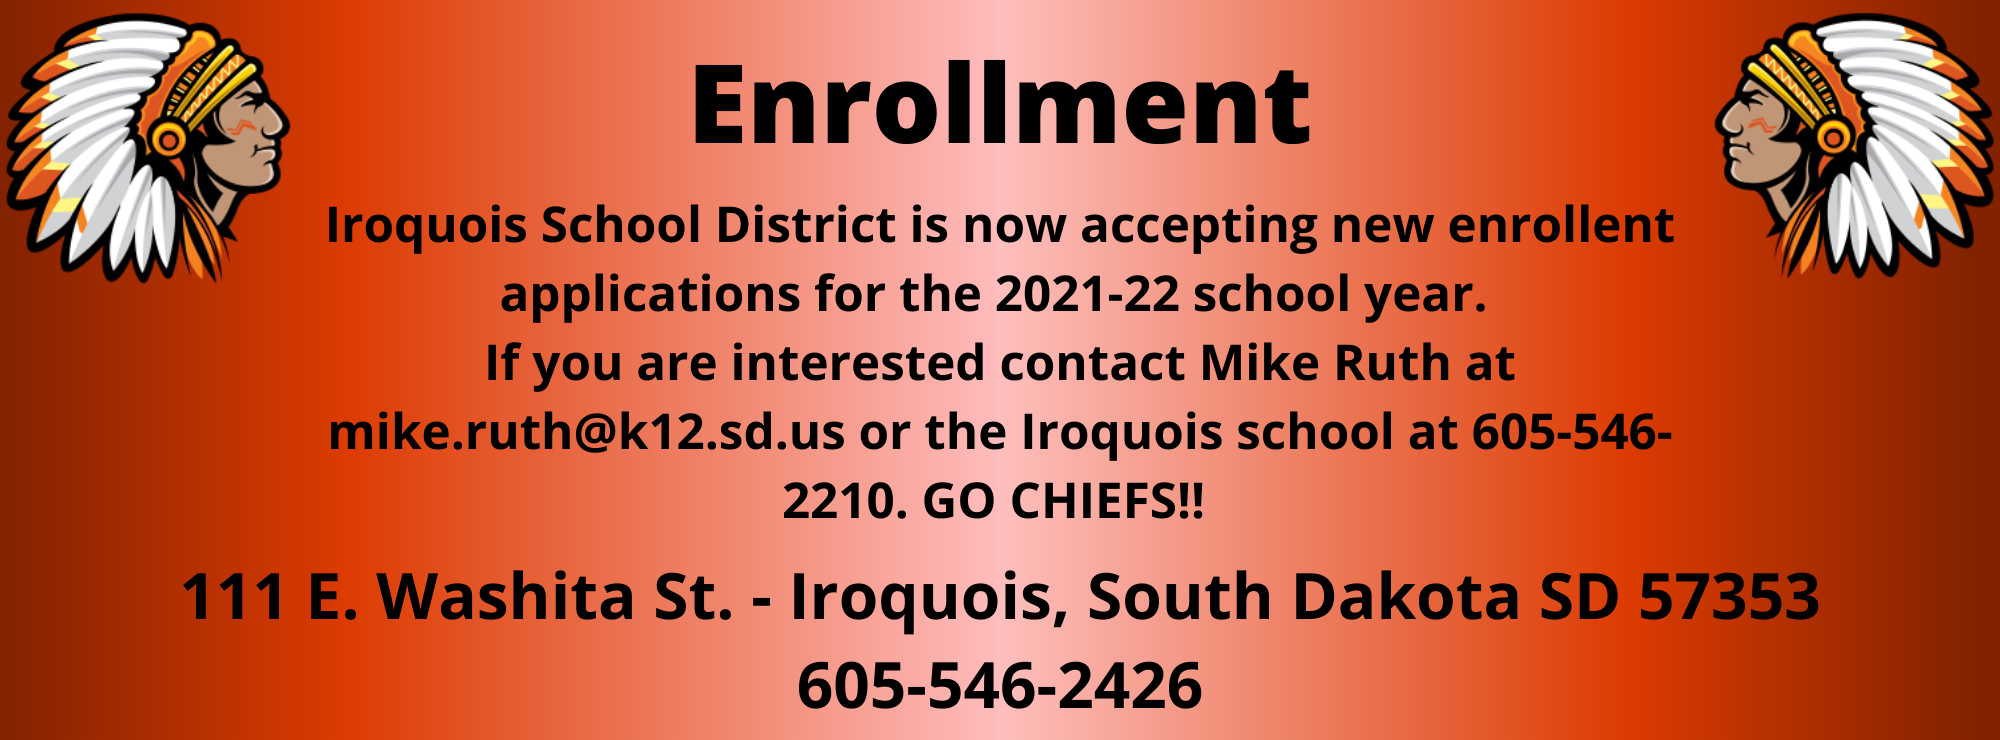 Iroquois School District is now accepting new enrollent applications for the 2021-22 school year.  If you are interested contact Mike Ruth at mike.ruth@k12.sd.us or the Iroquois school at 605-546-2210. GO CHIEFS!!